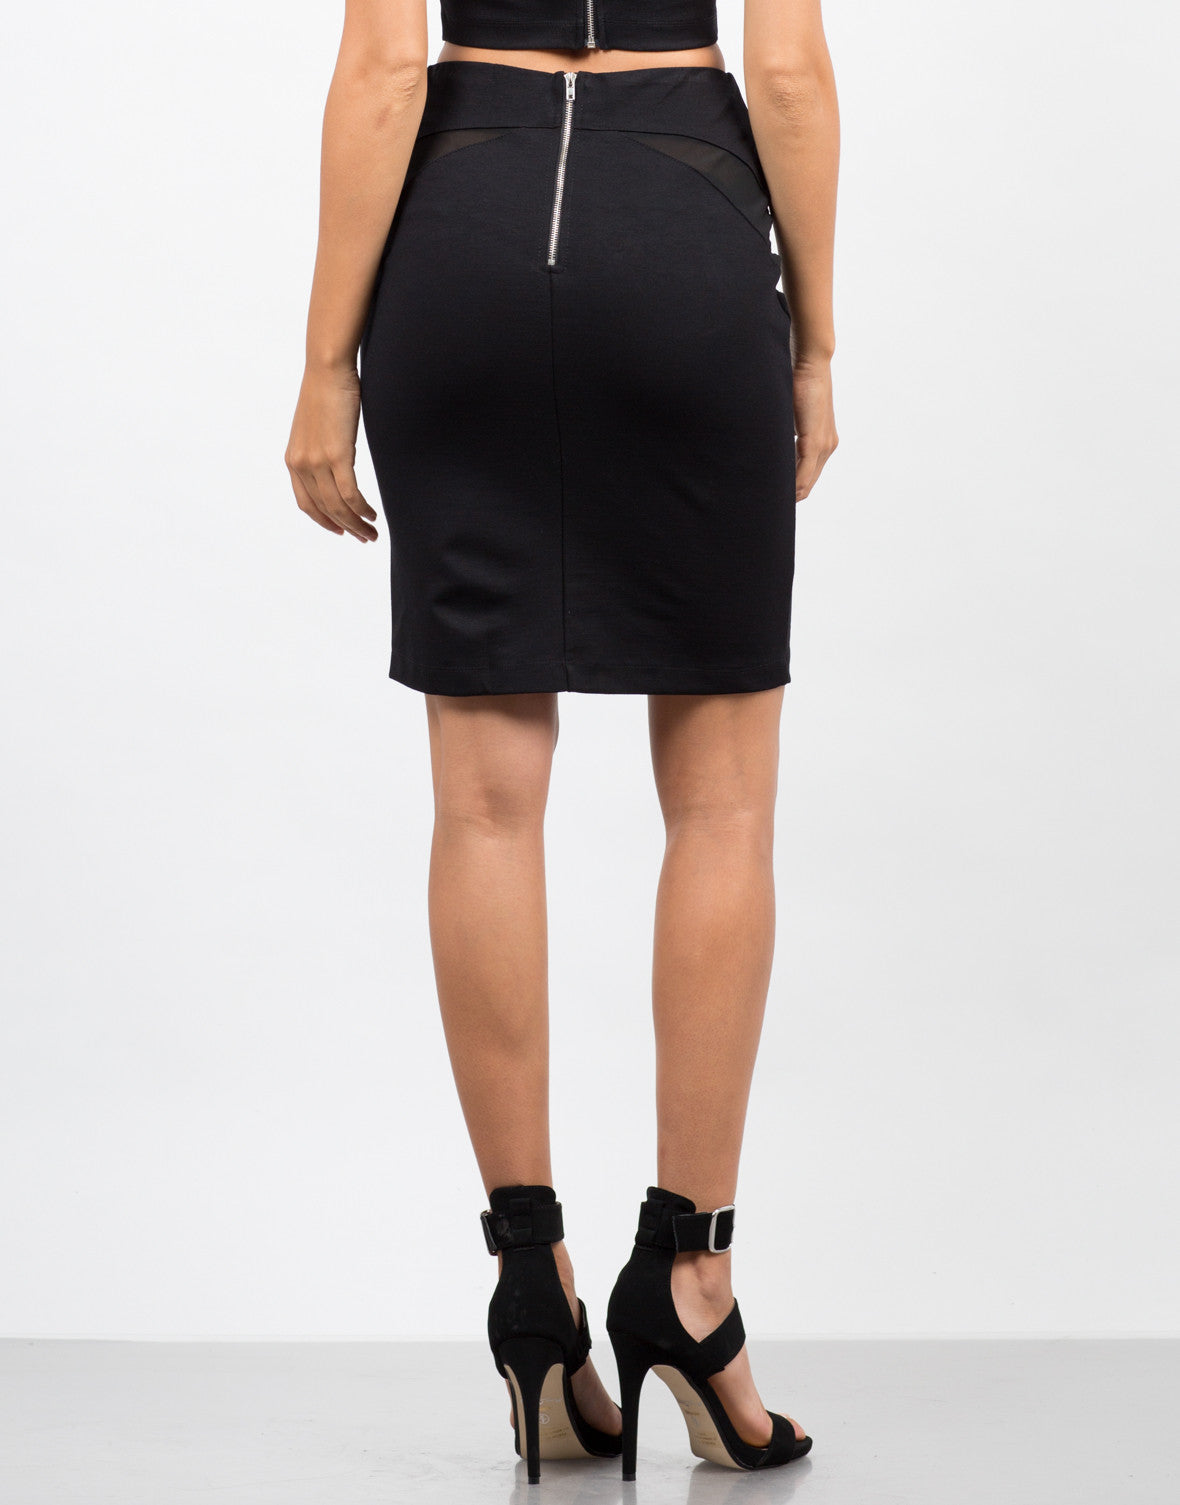 Back View of Mesh Bodycon Skirt